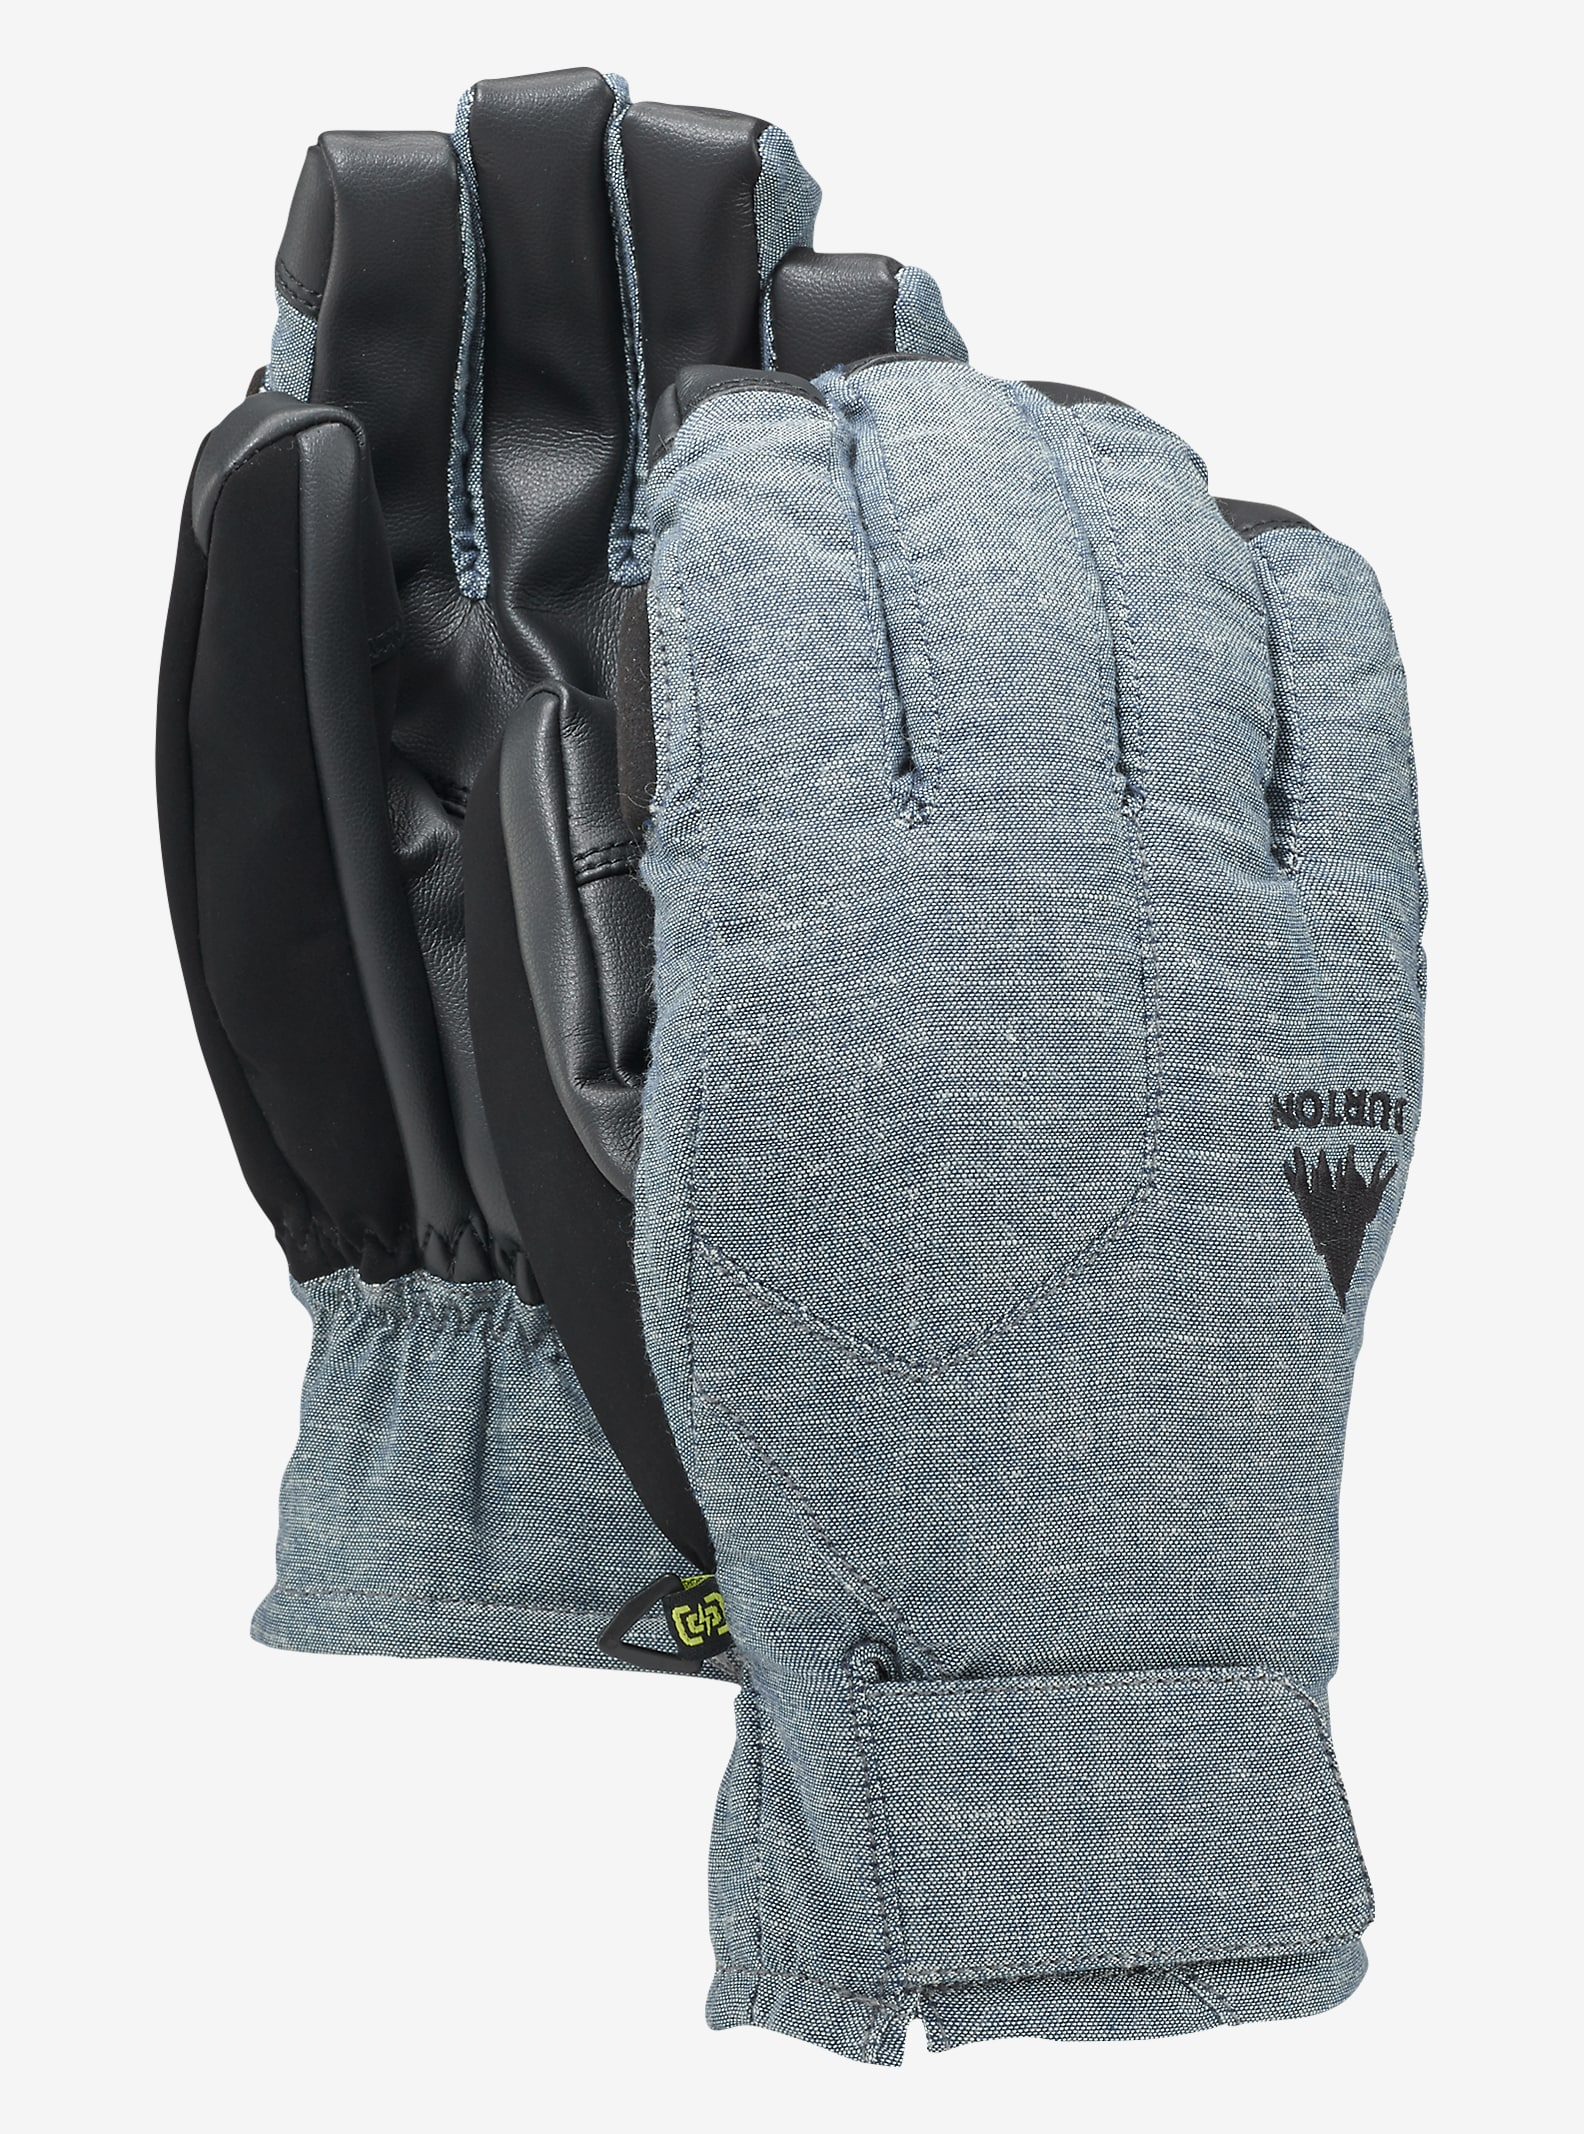 Burton Pyro Under Glove shown in Chambray